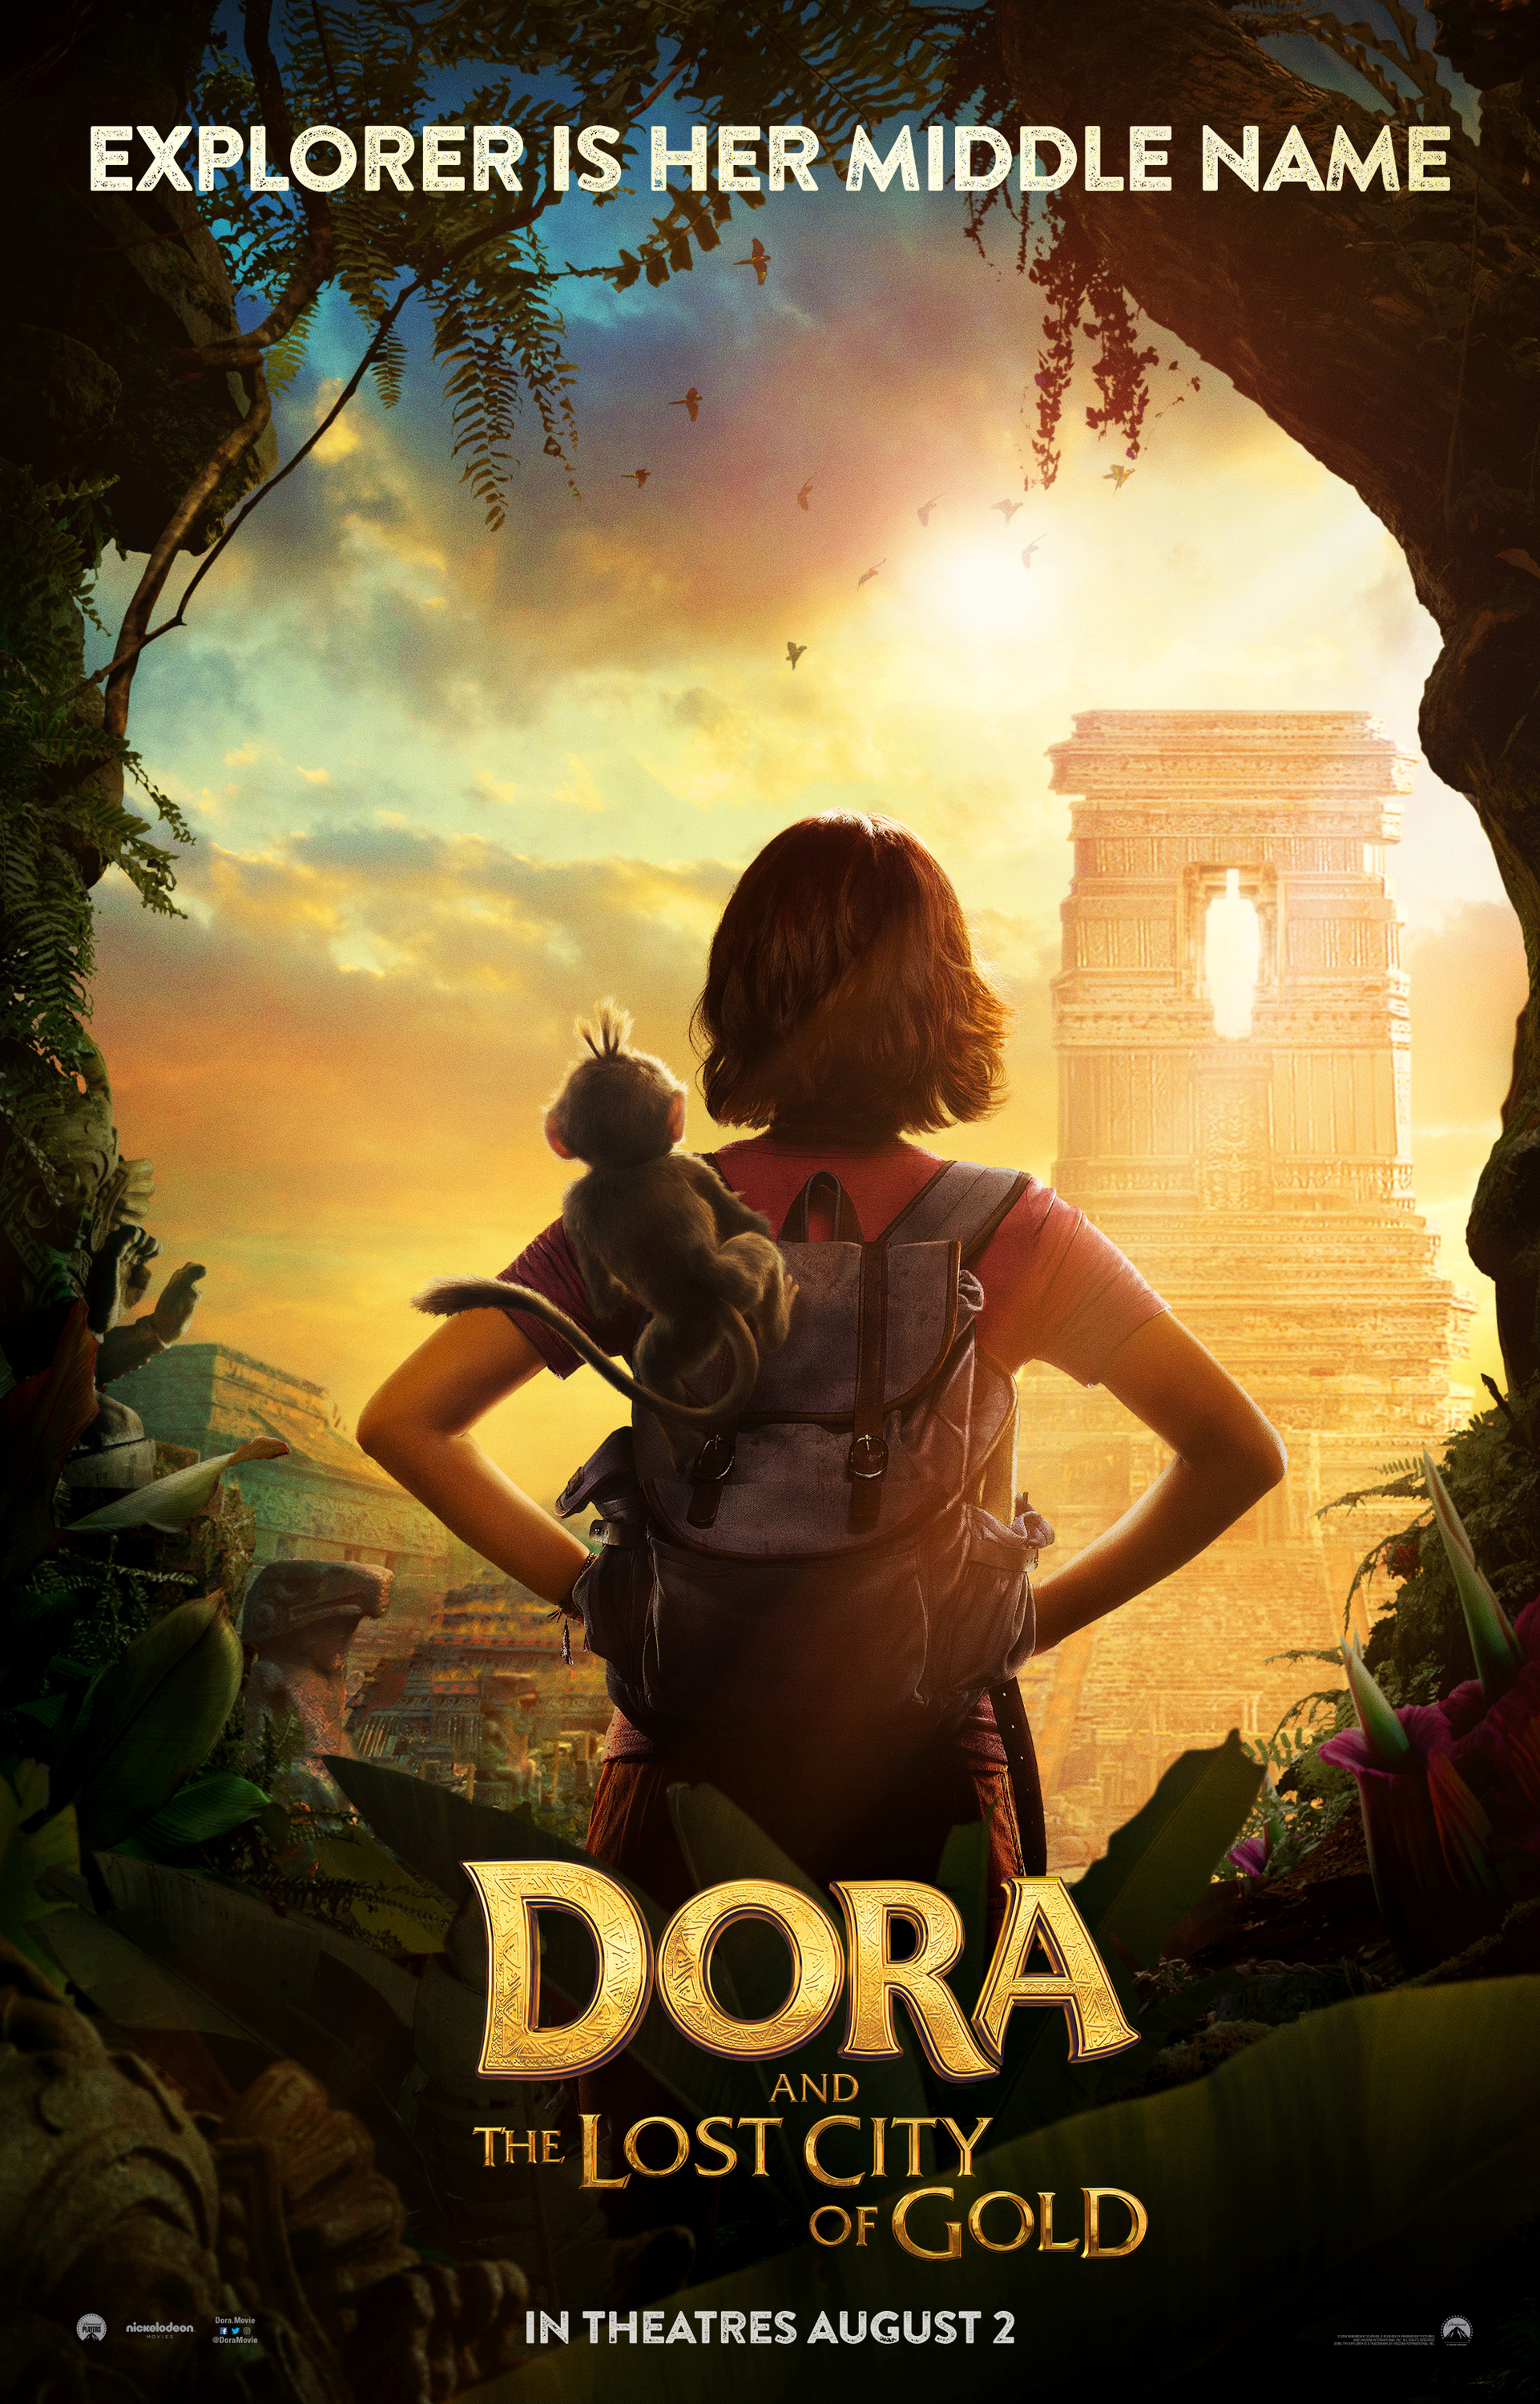 dora_and_the_lost_city_of_gold_p1.png